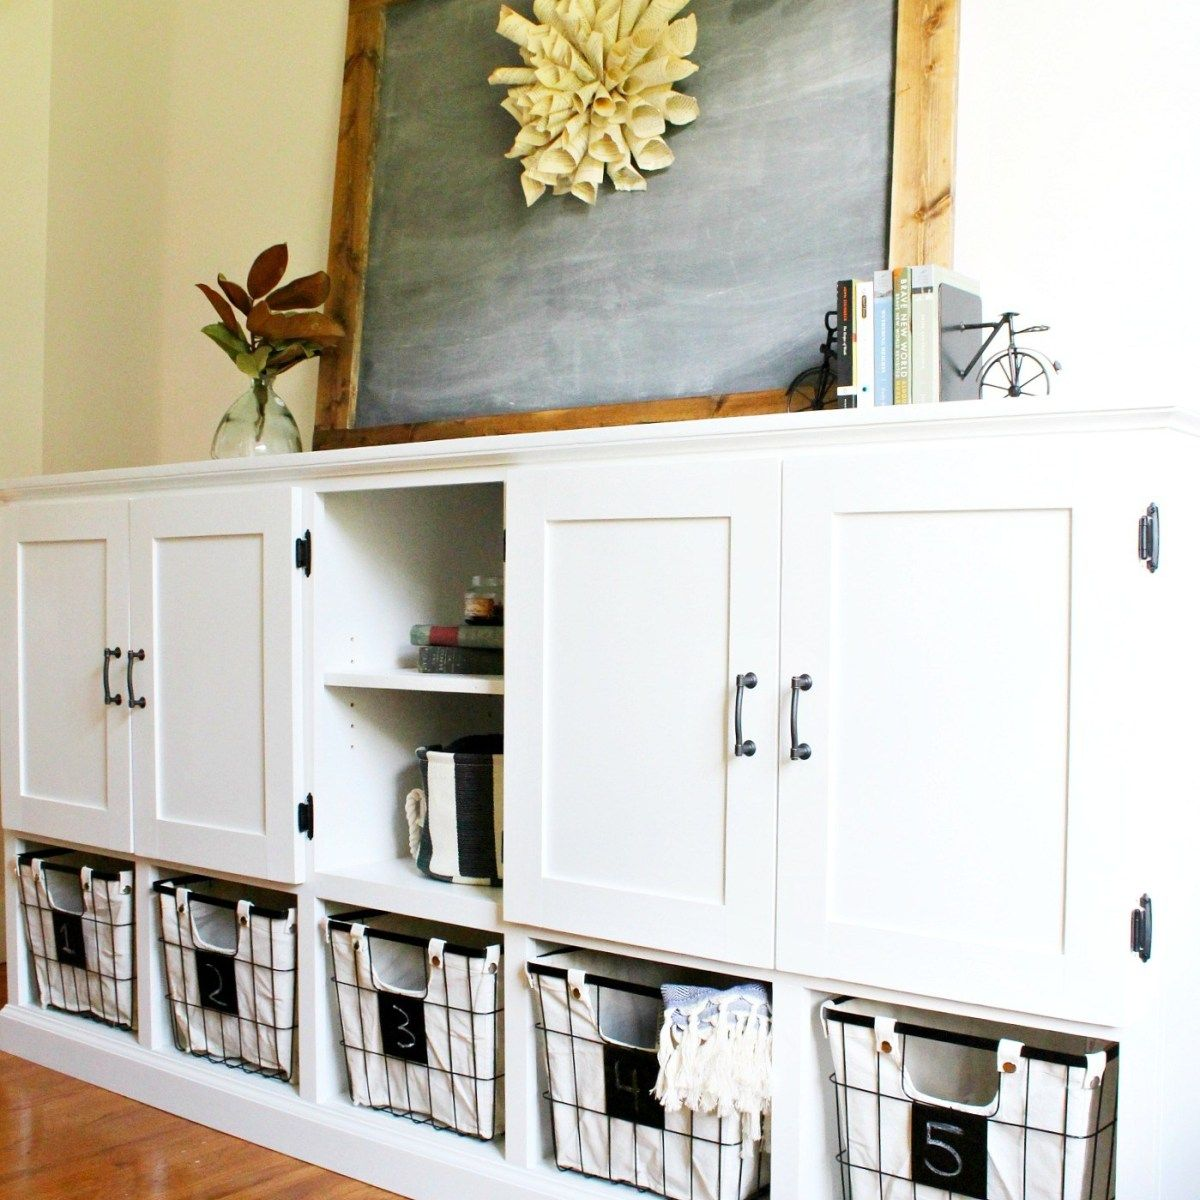 DIY Storage Console {With Shelves, and Cubbies